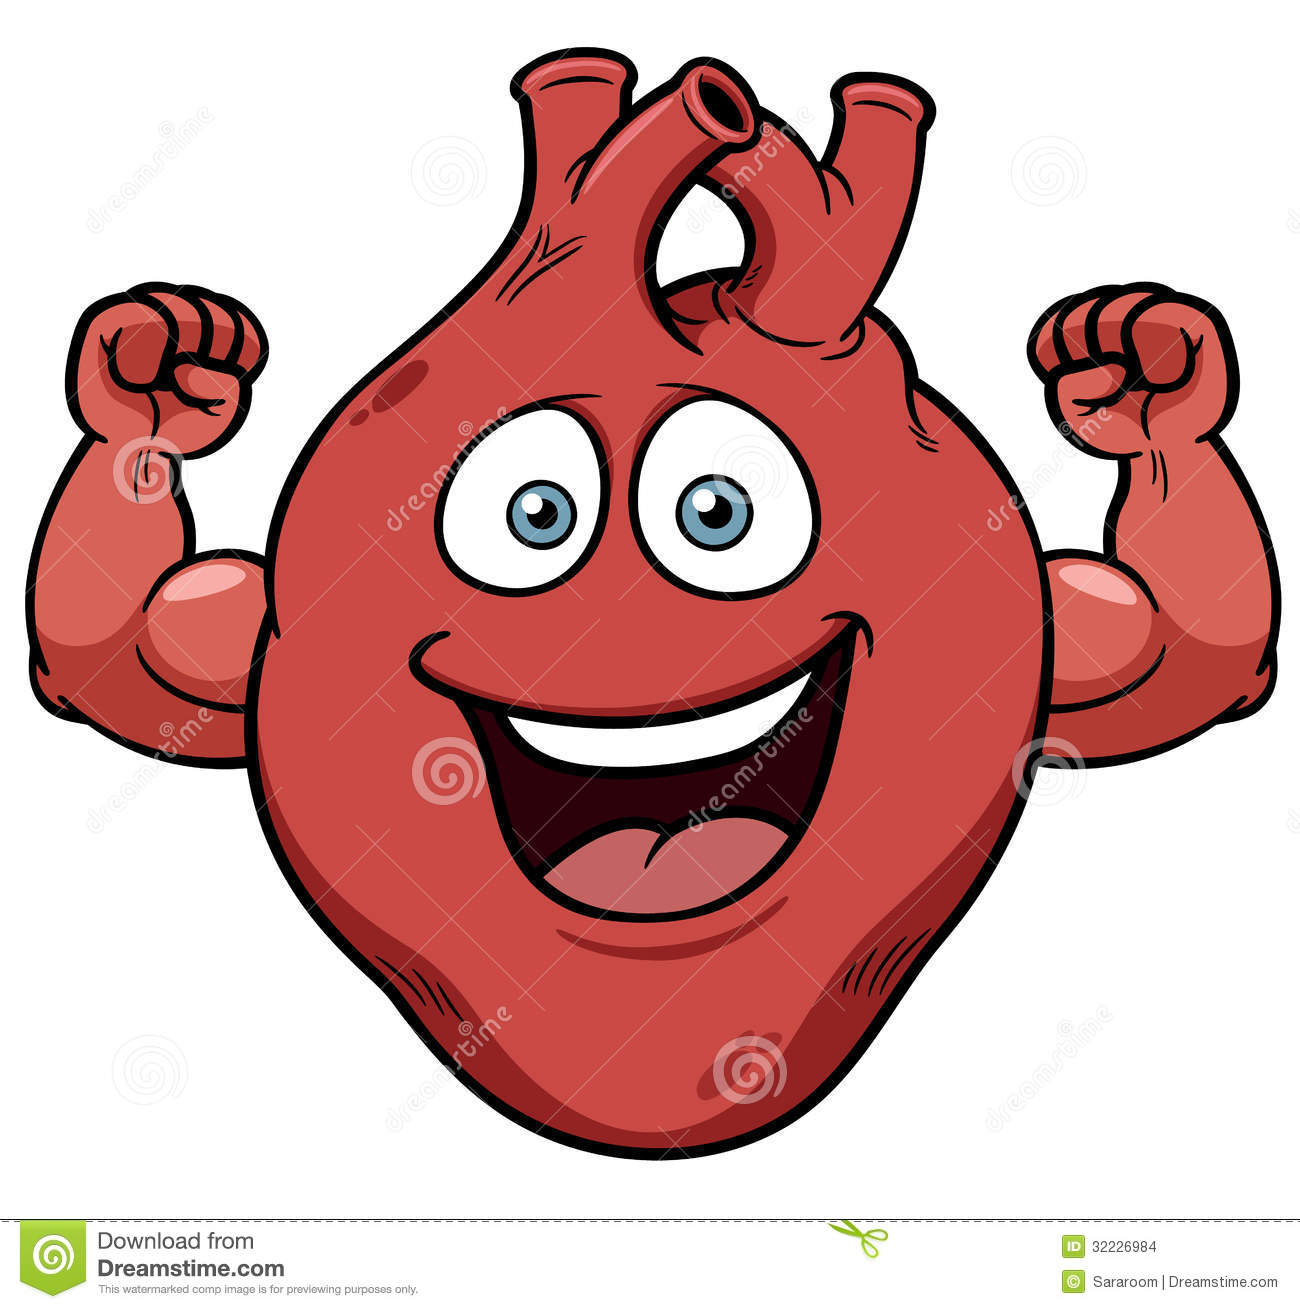 Heart muscle clipart 20 free Cliparts | Download images on ...